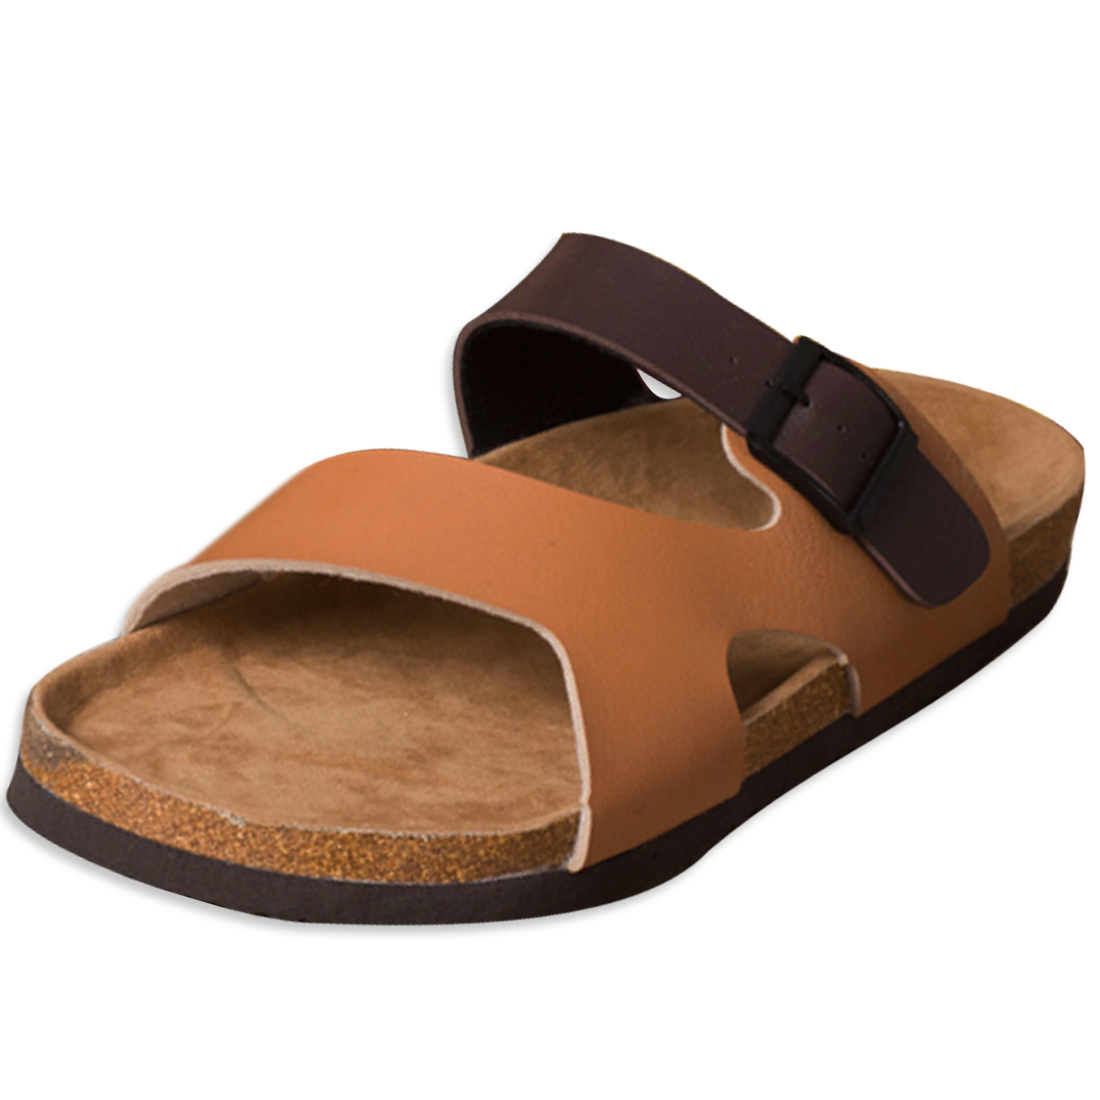 Men Coffee 10 US Size Flexible Strap Gentle Footbed Metal Buckle Sandal